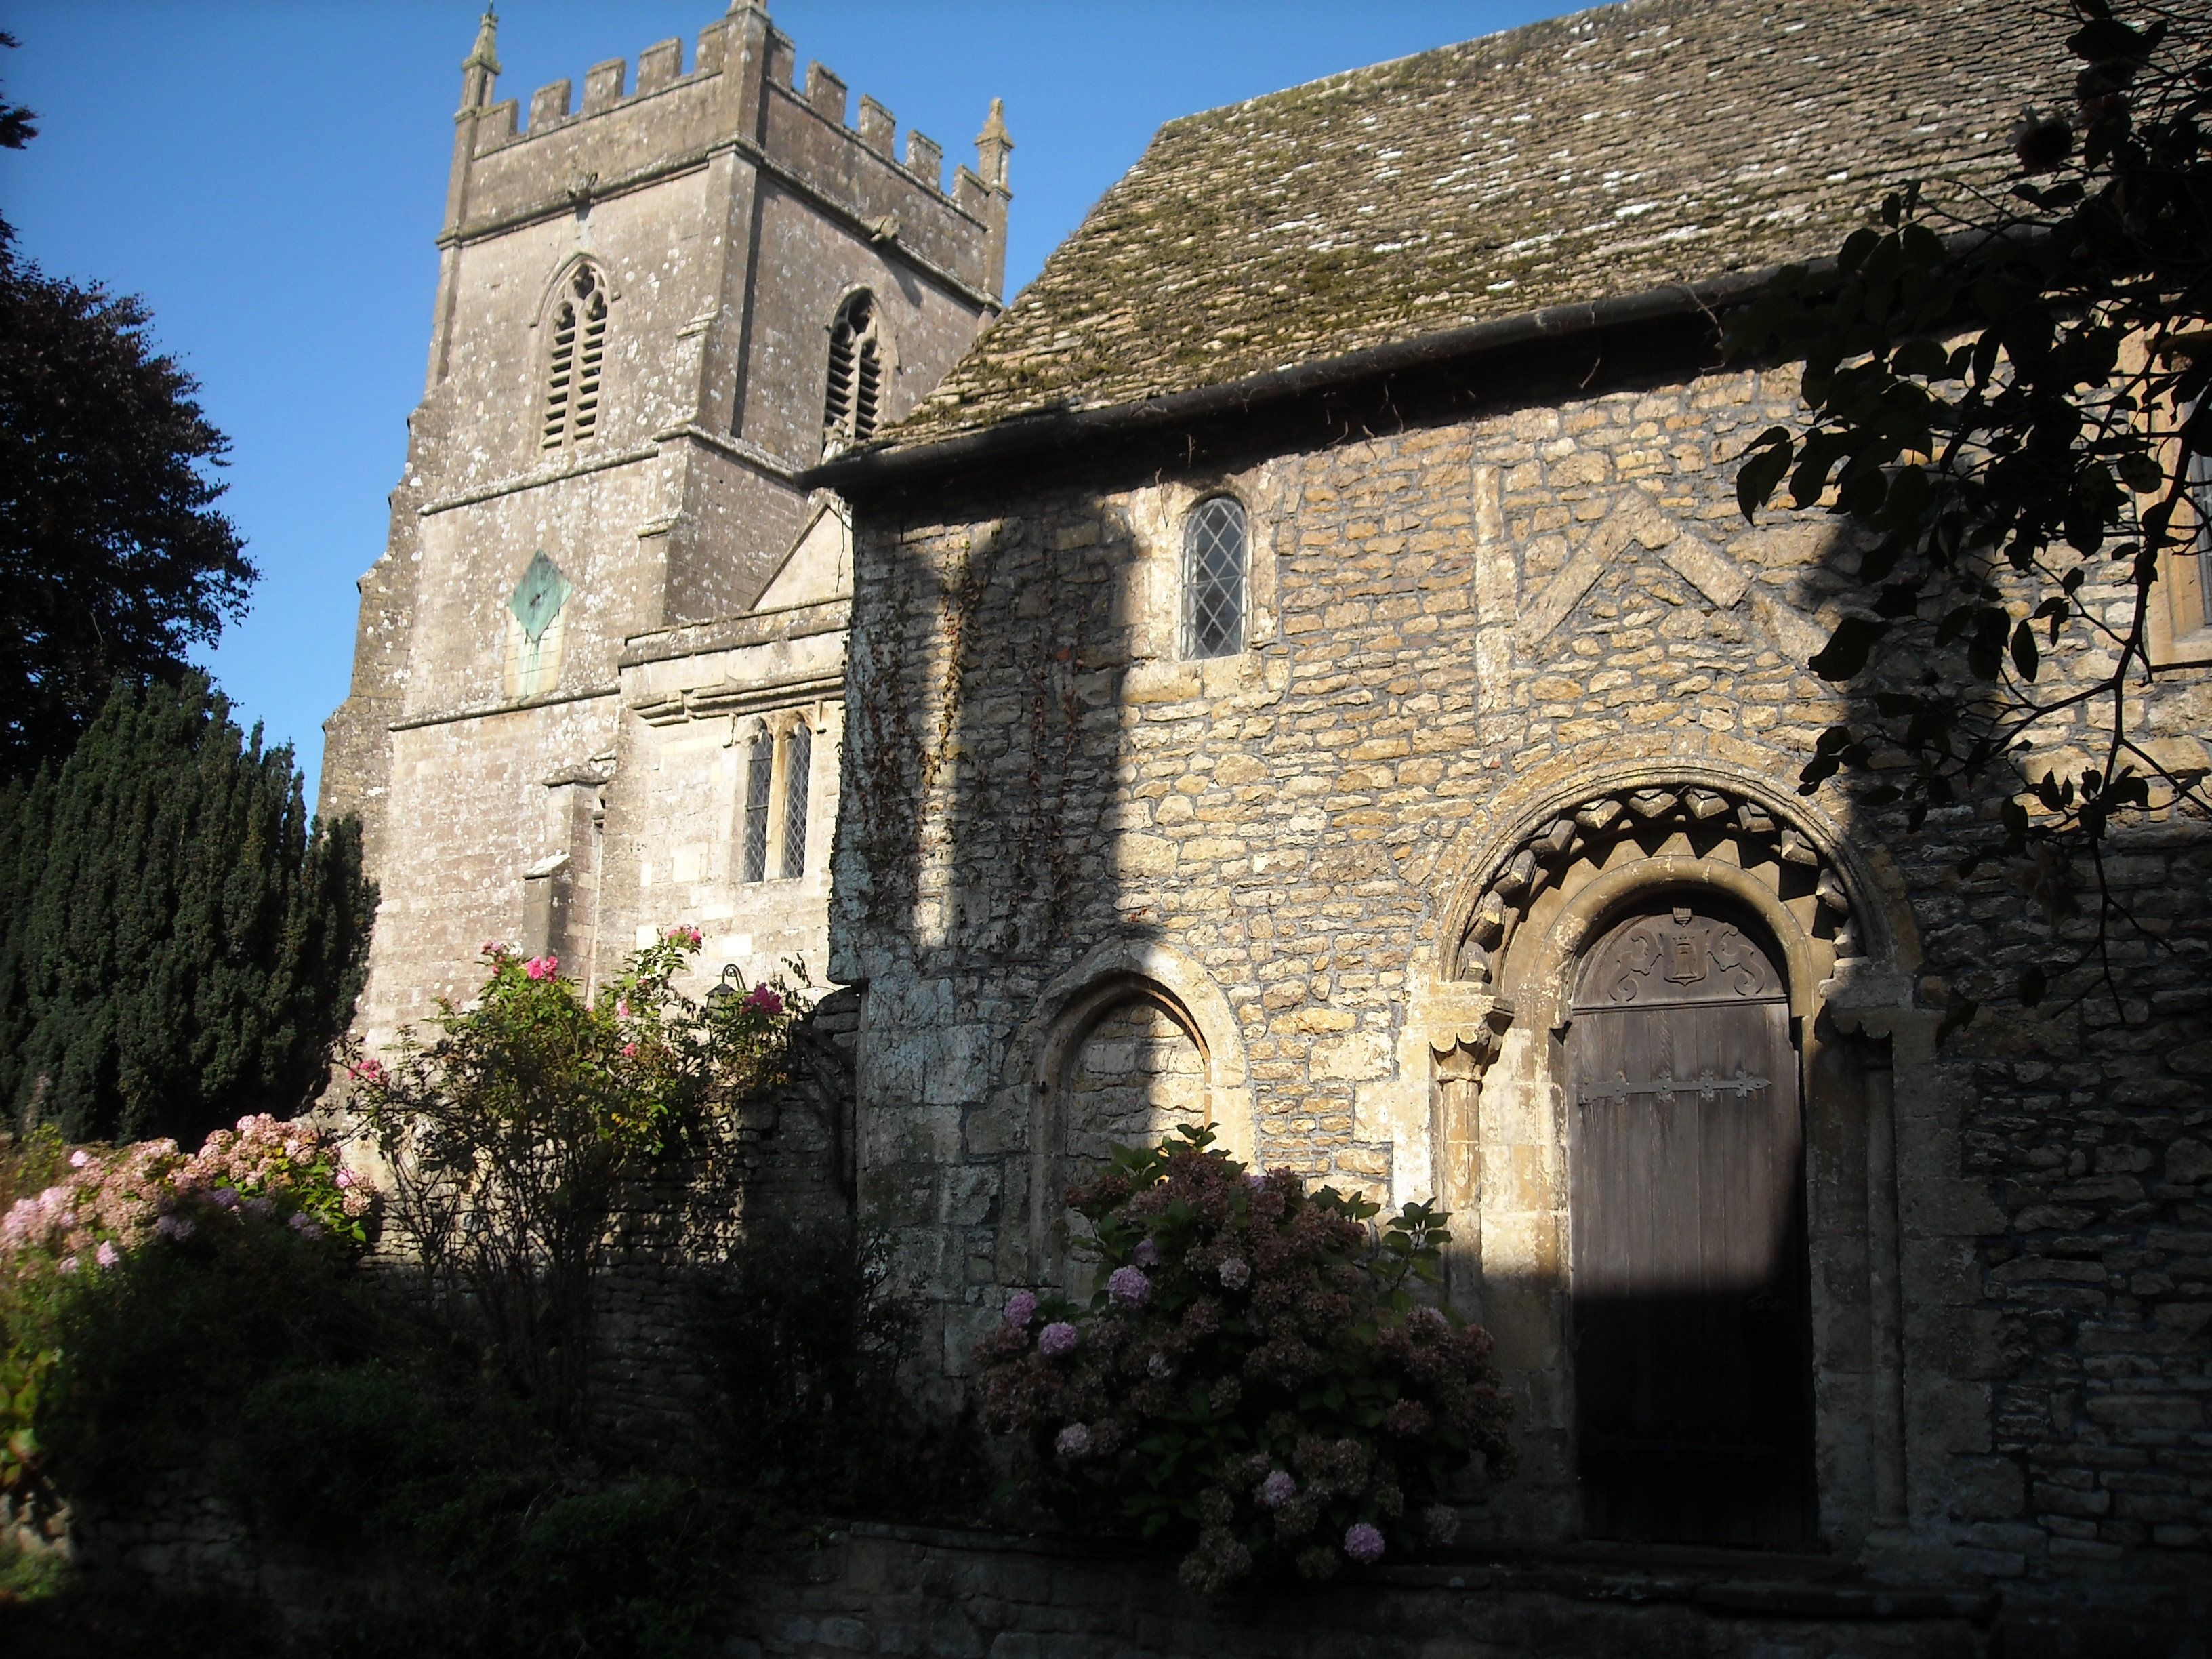 Horton's old hall. The north and south doorways forming a cross passage from the manor courtyard to the church date to the 1160s and are very similar to a doorway in Avebury church. The old hall may once have been the church as the present church has nothing as old as this.